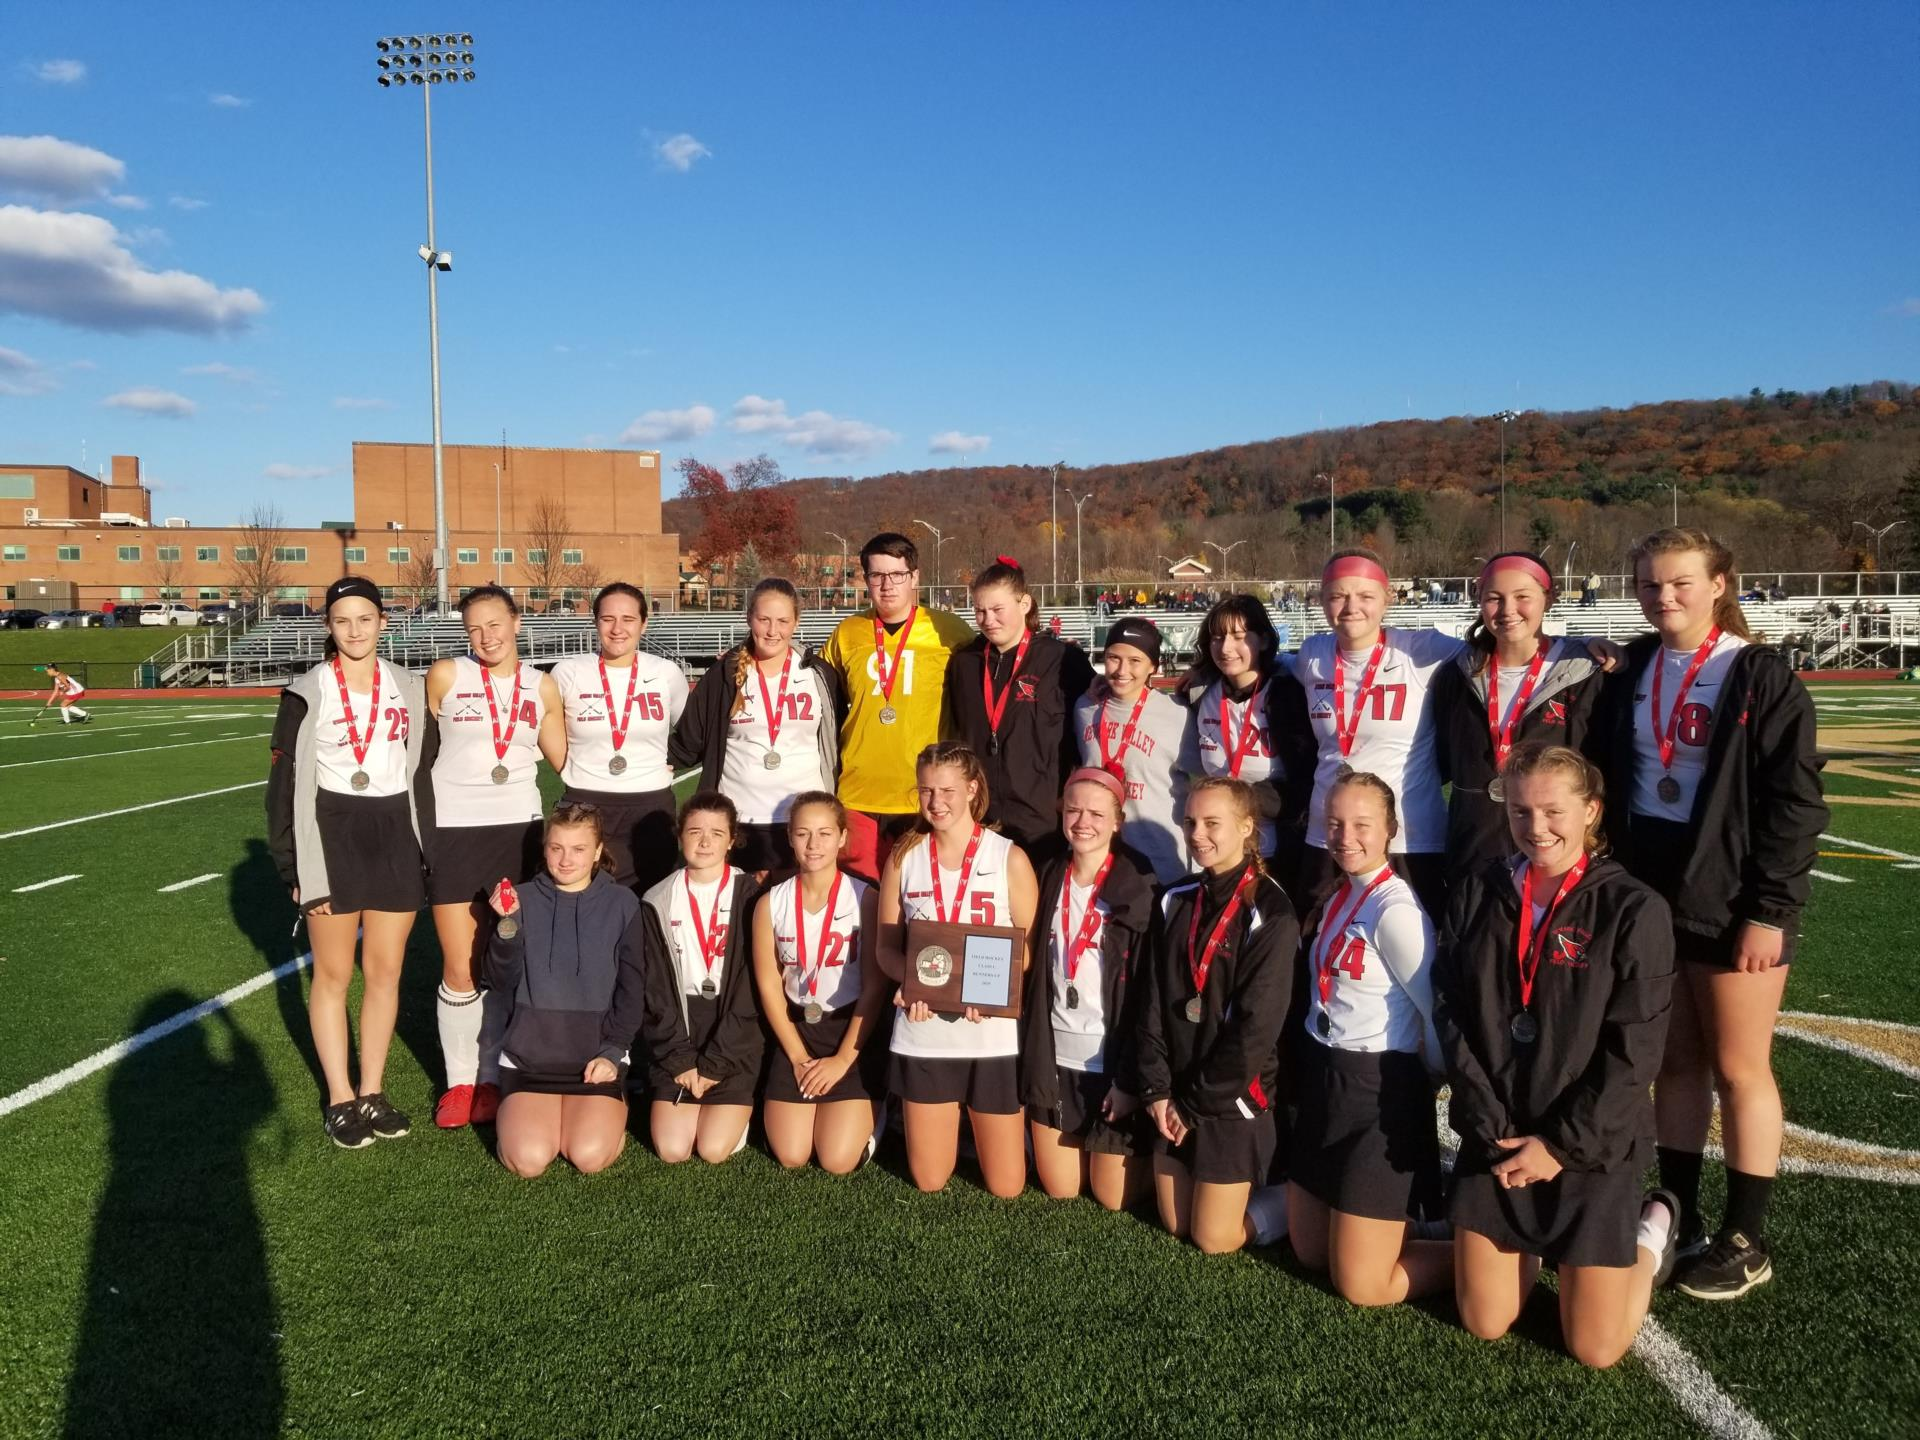 NV Field Hockey Team with ribbons on field